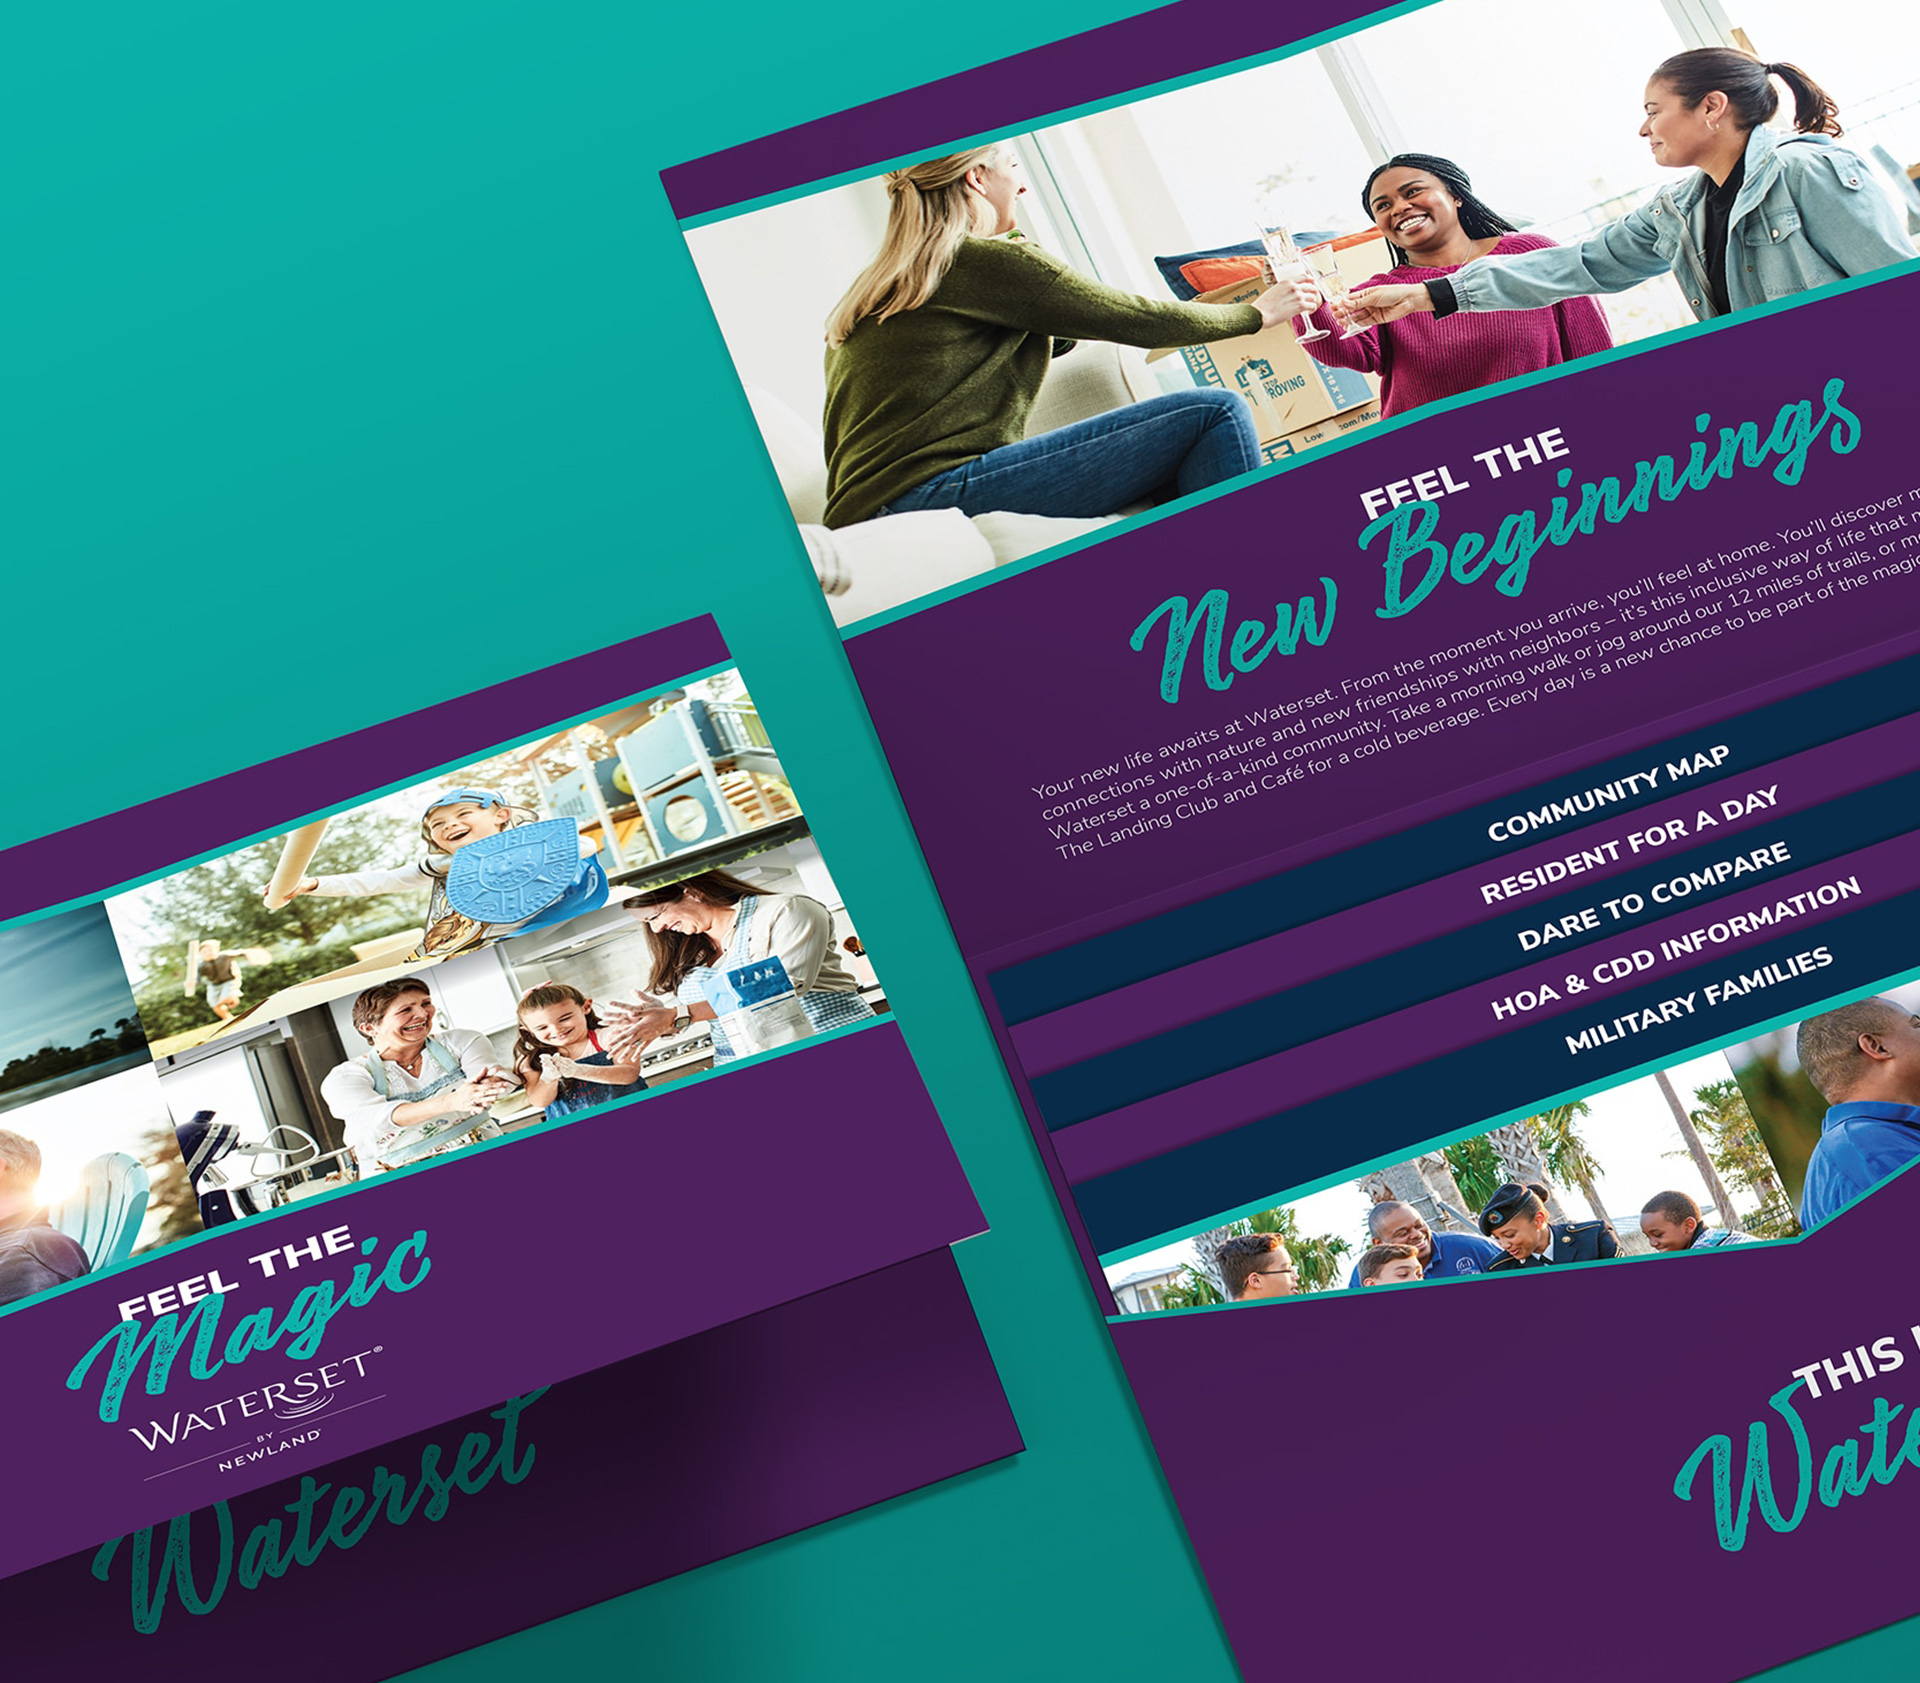 Marketing materials for Waterset by Newland